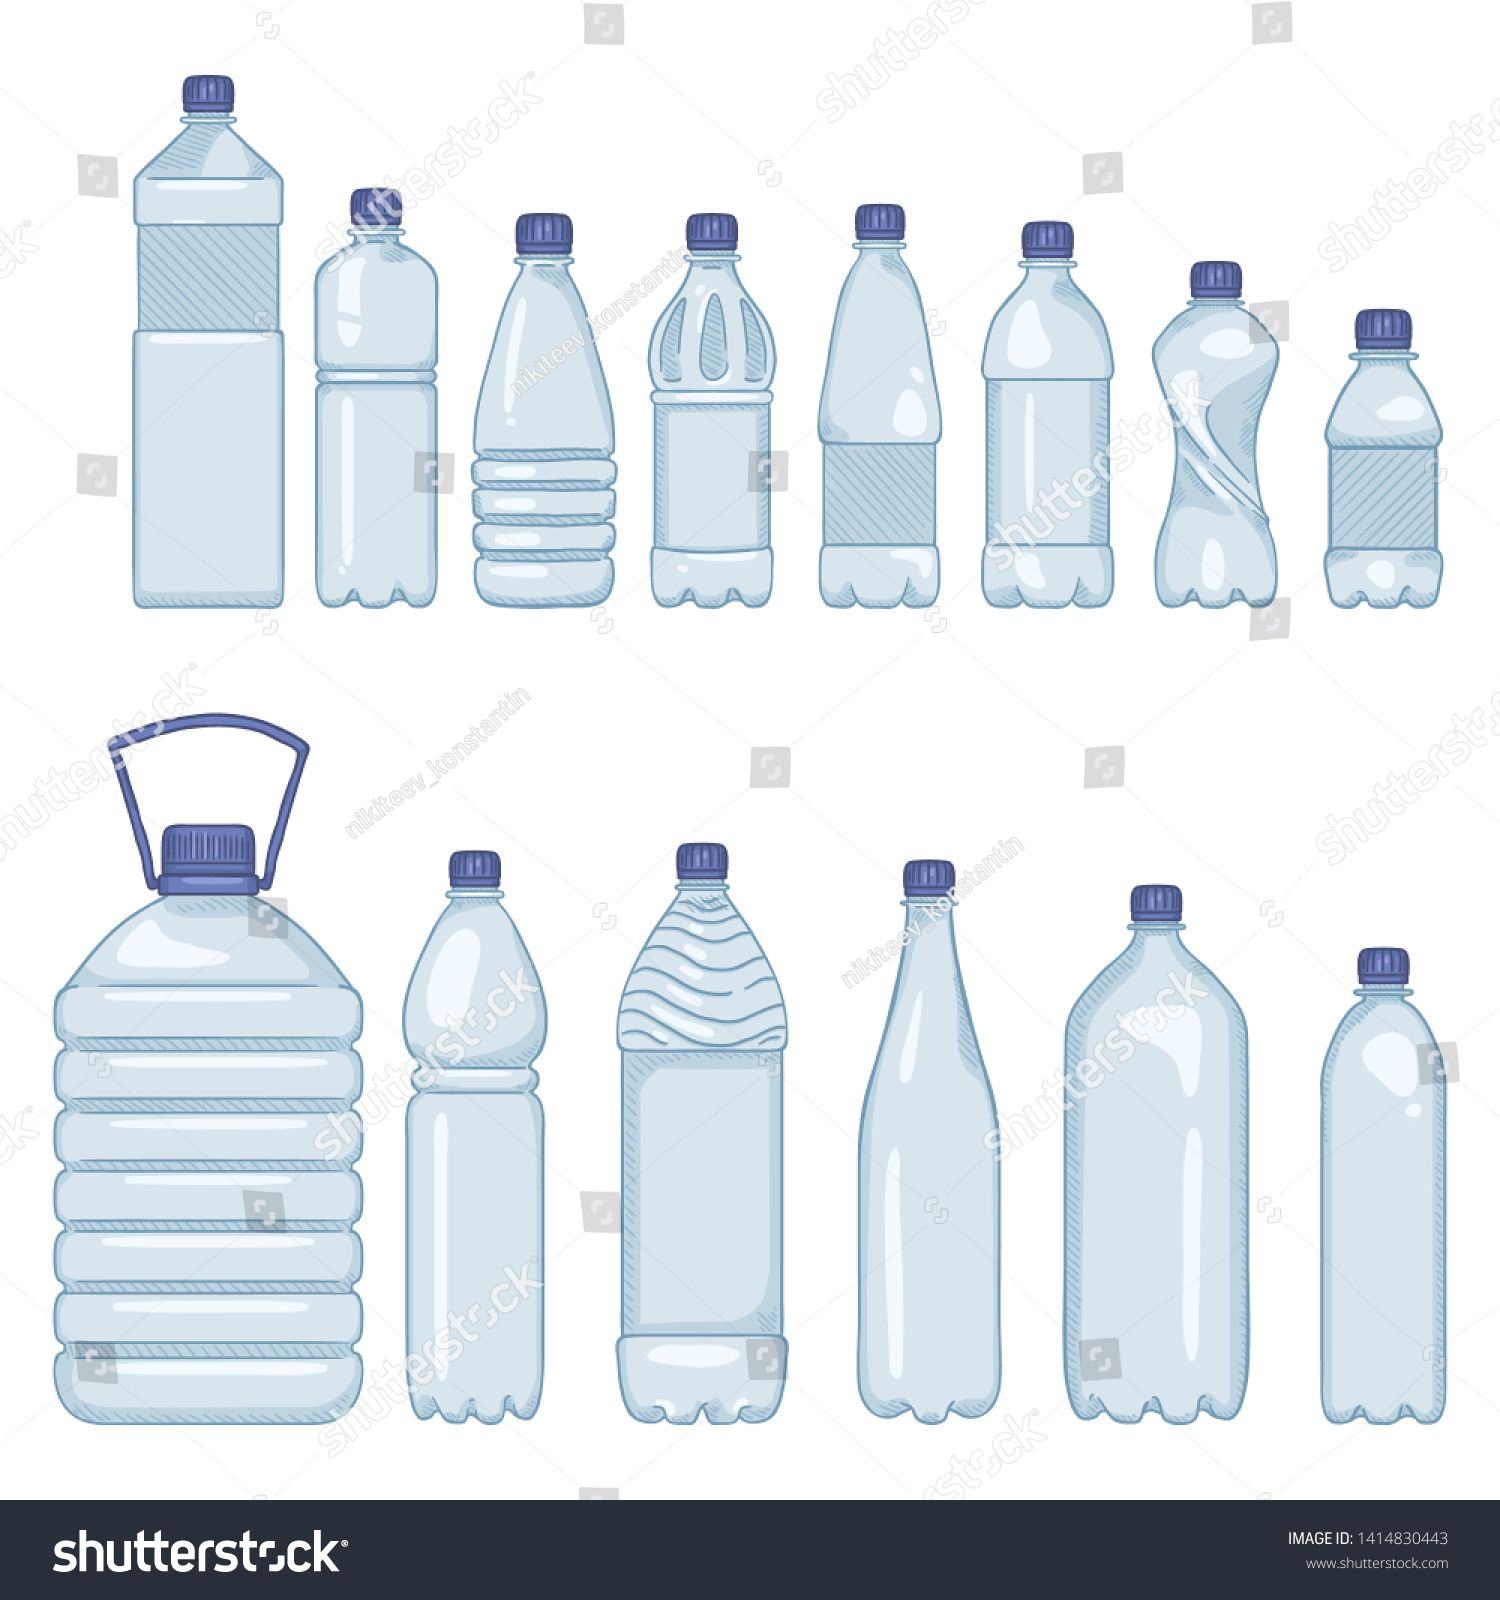 Vector Set Of Cartoon Plastic Bottles Of Water On Isolated White Background Ad Ad Cartoon Plastic Vecto Plastic Bottles Water Bottle Graphics Inspiration